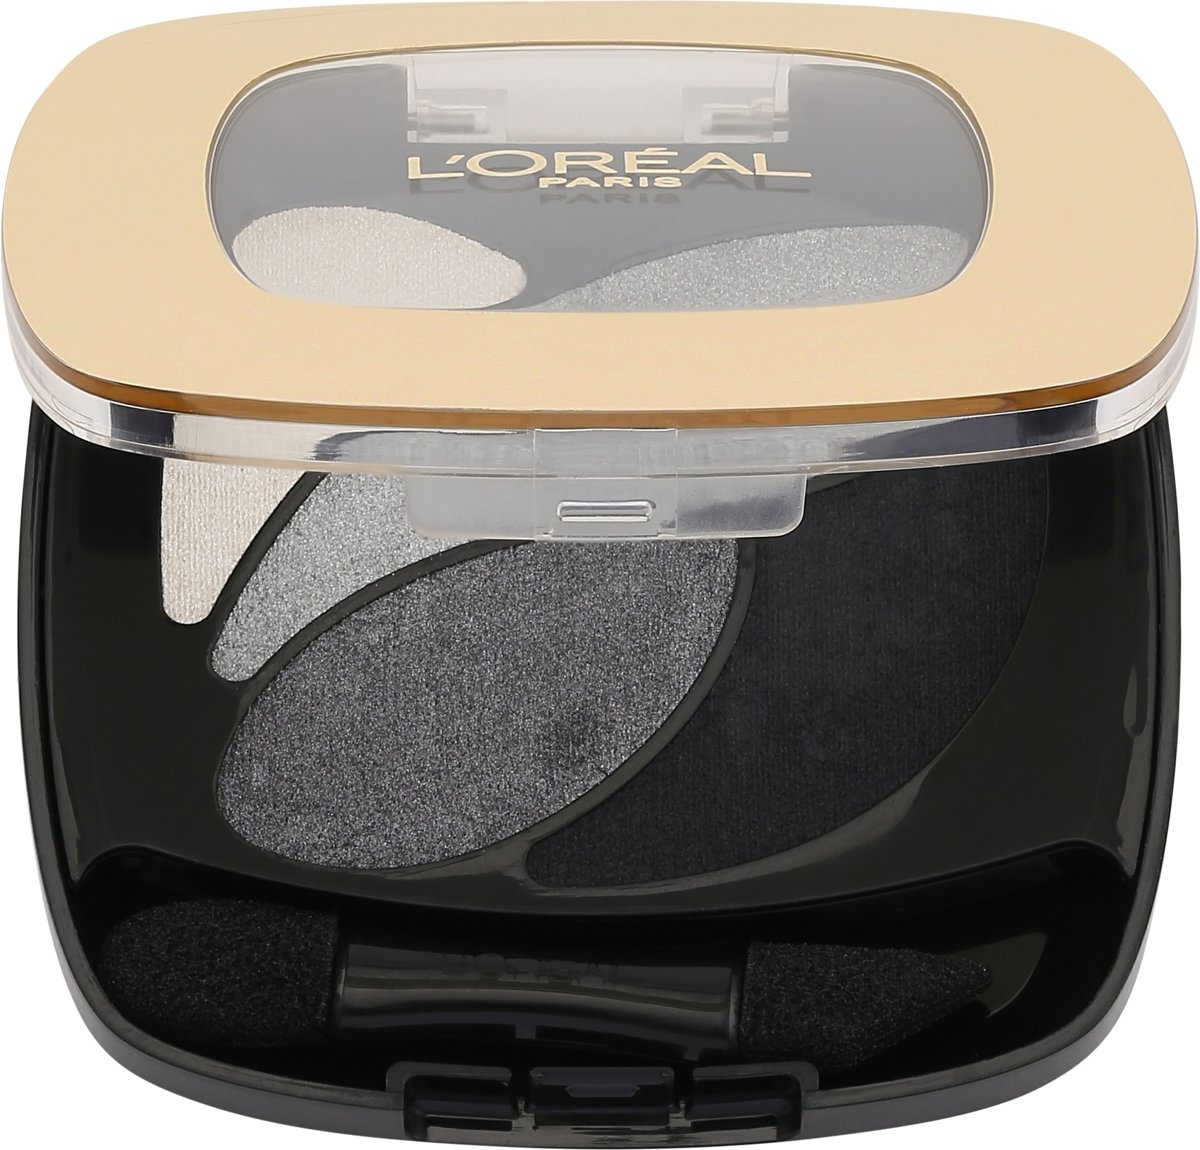 L'Oréal Paris Color Riche Les Ombres Quad - E5 Velour Noir - Oogschaduw